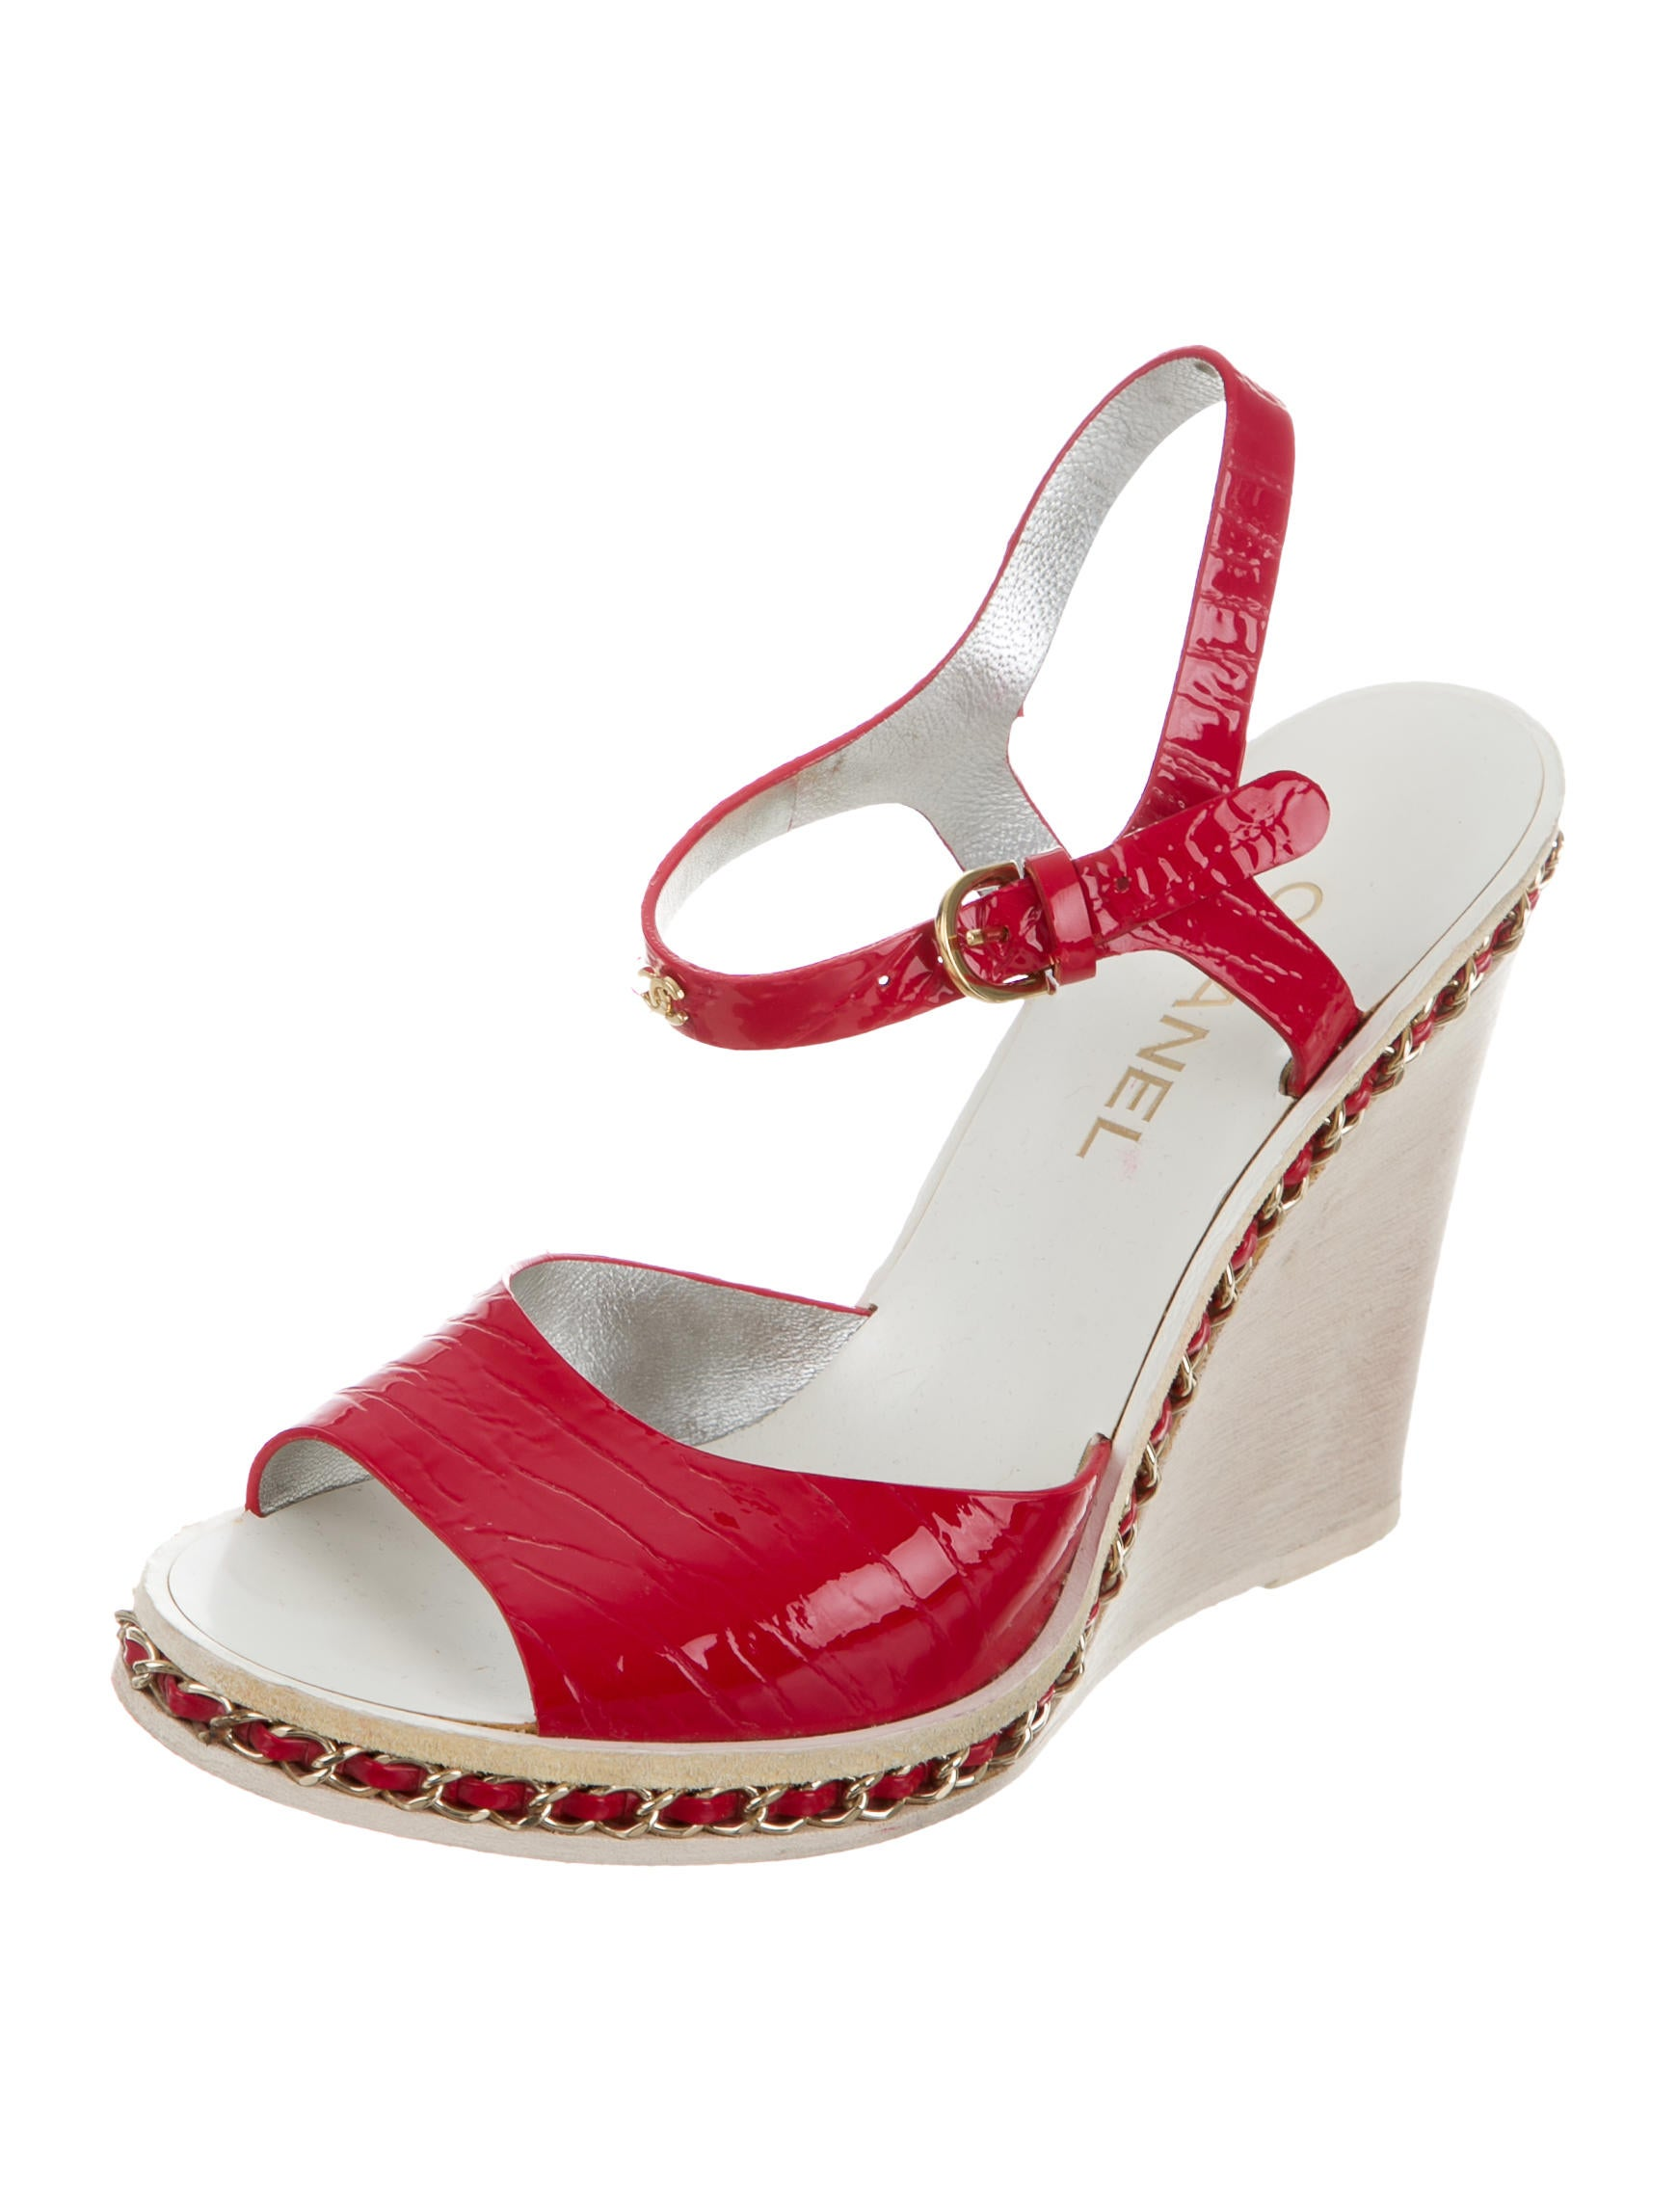 chanel patent chain embellished wedges shoes cha161007